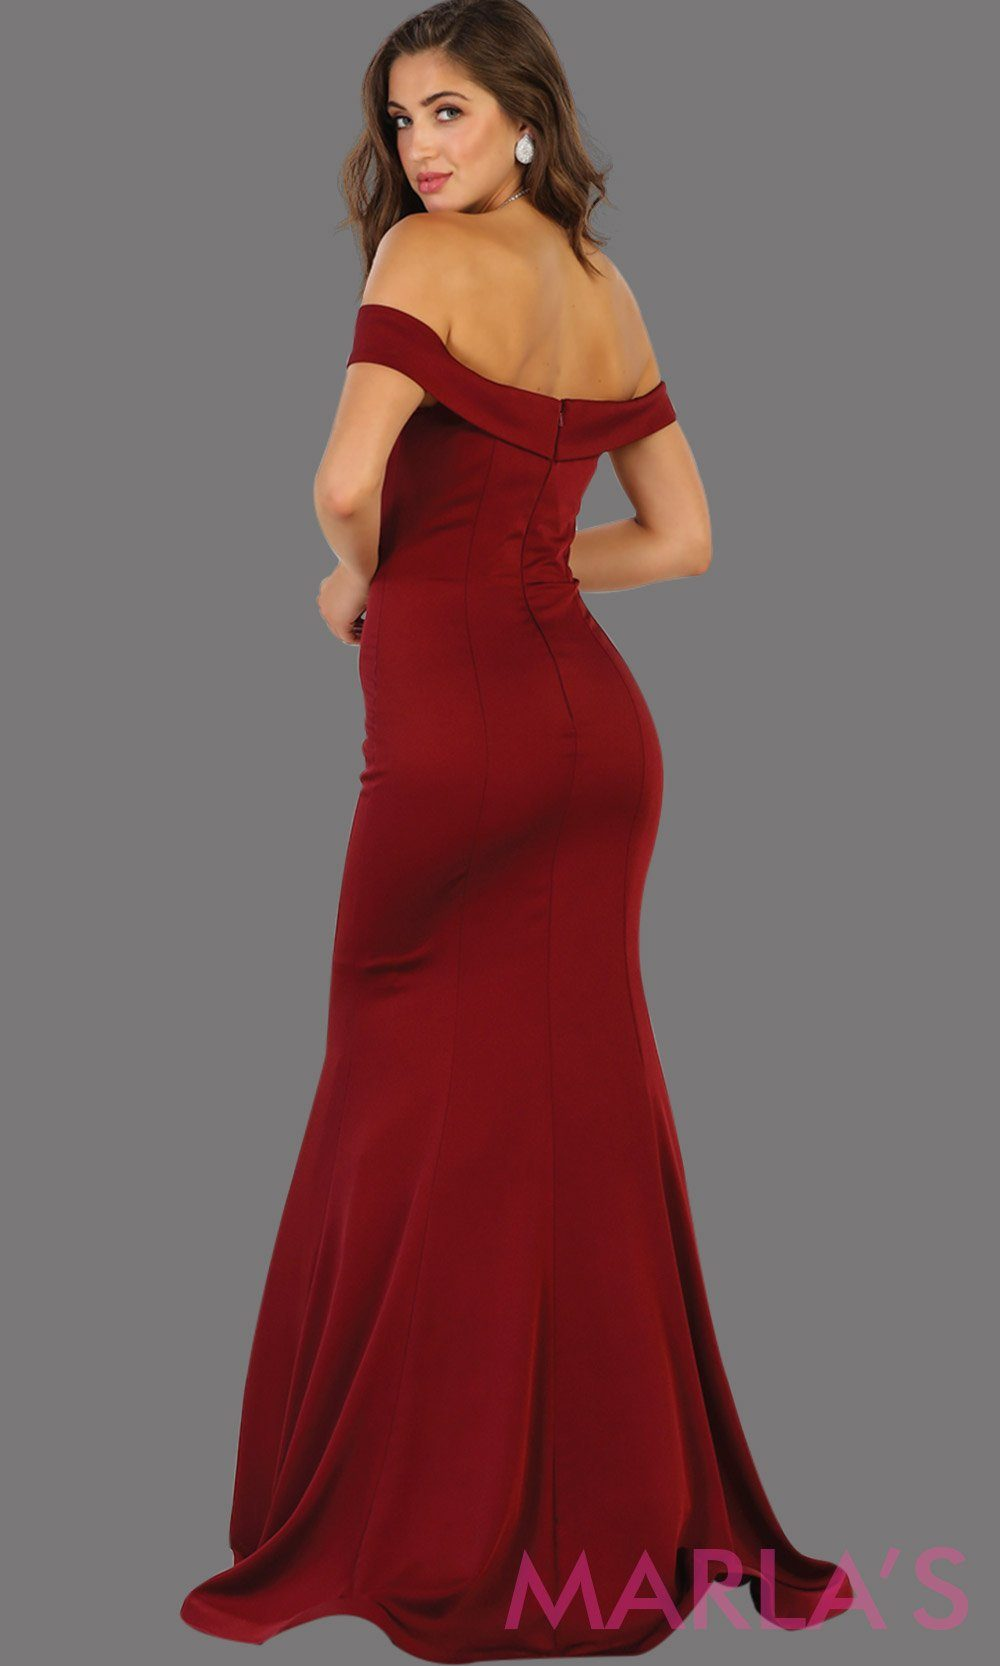 Back Long off shoulder dark red  fitted mermaid dress. This sleek and sexy burgundy dress is perfect for bridesmaid dress, formal wedding party, wedding guest dress, gala, charity event dress. Available in plus size